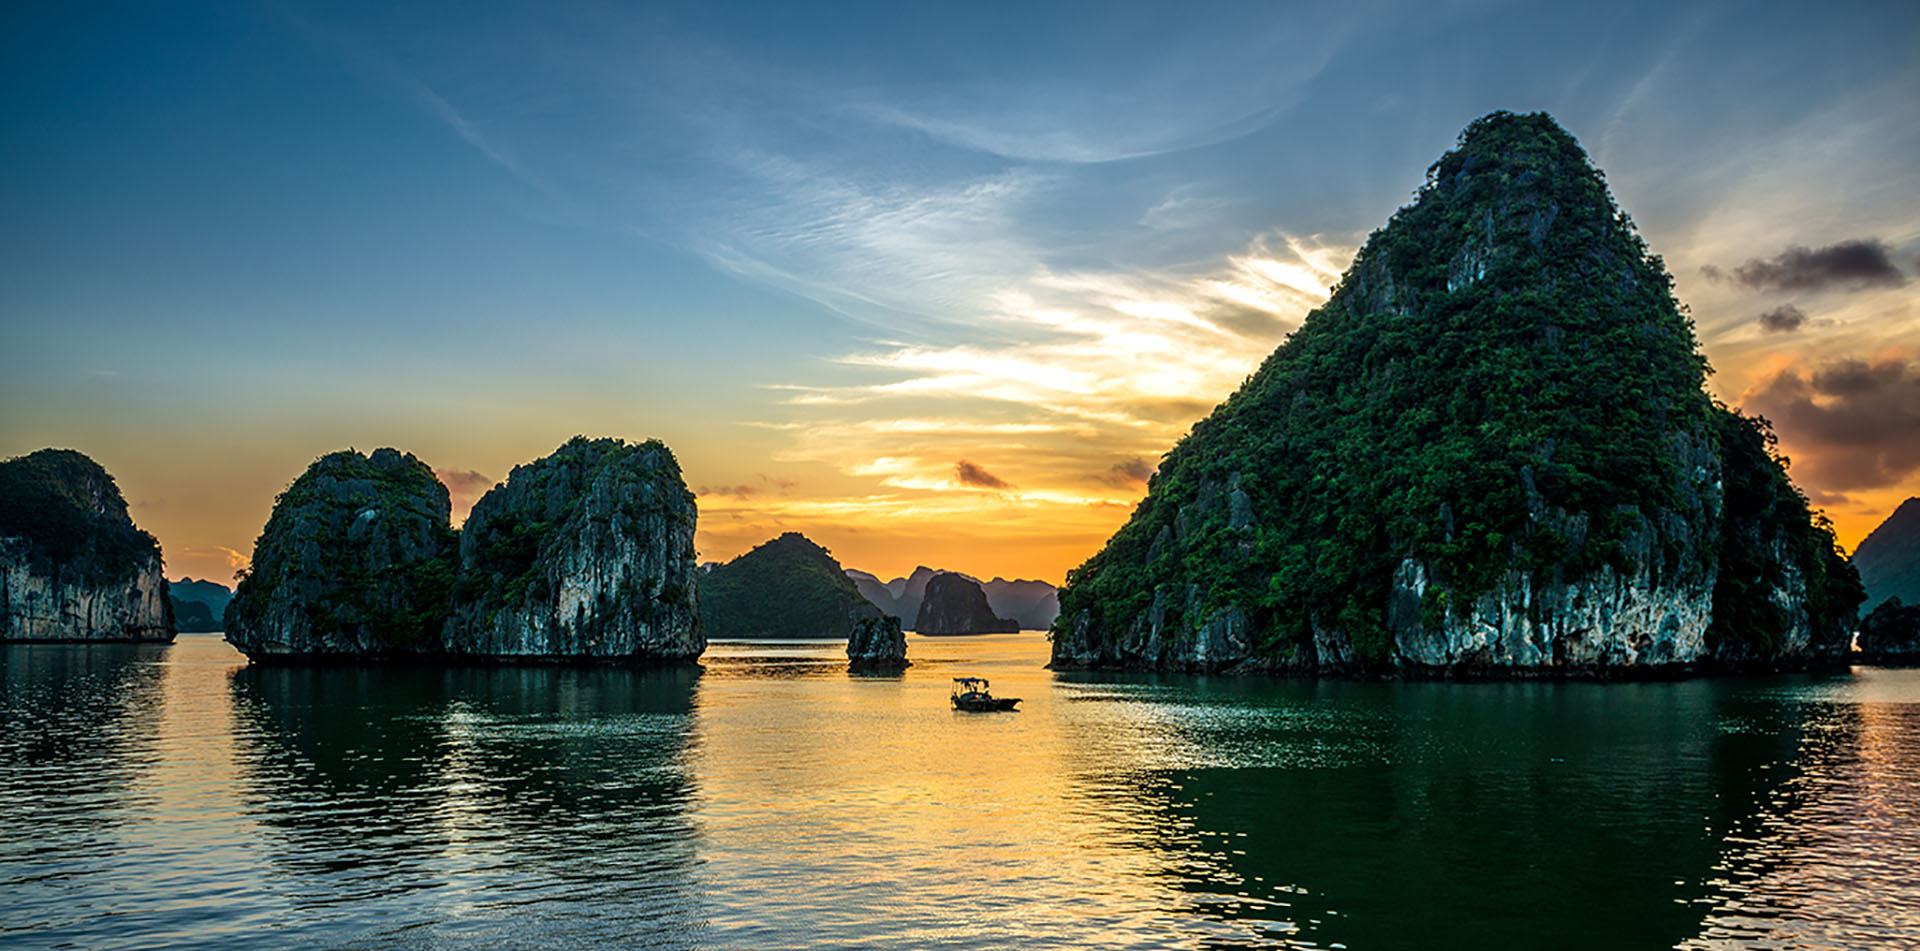 Asia Vietnam sunset over the water and karst formations of Halong Bay - luxury vacation destinations